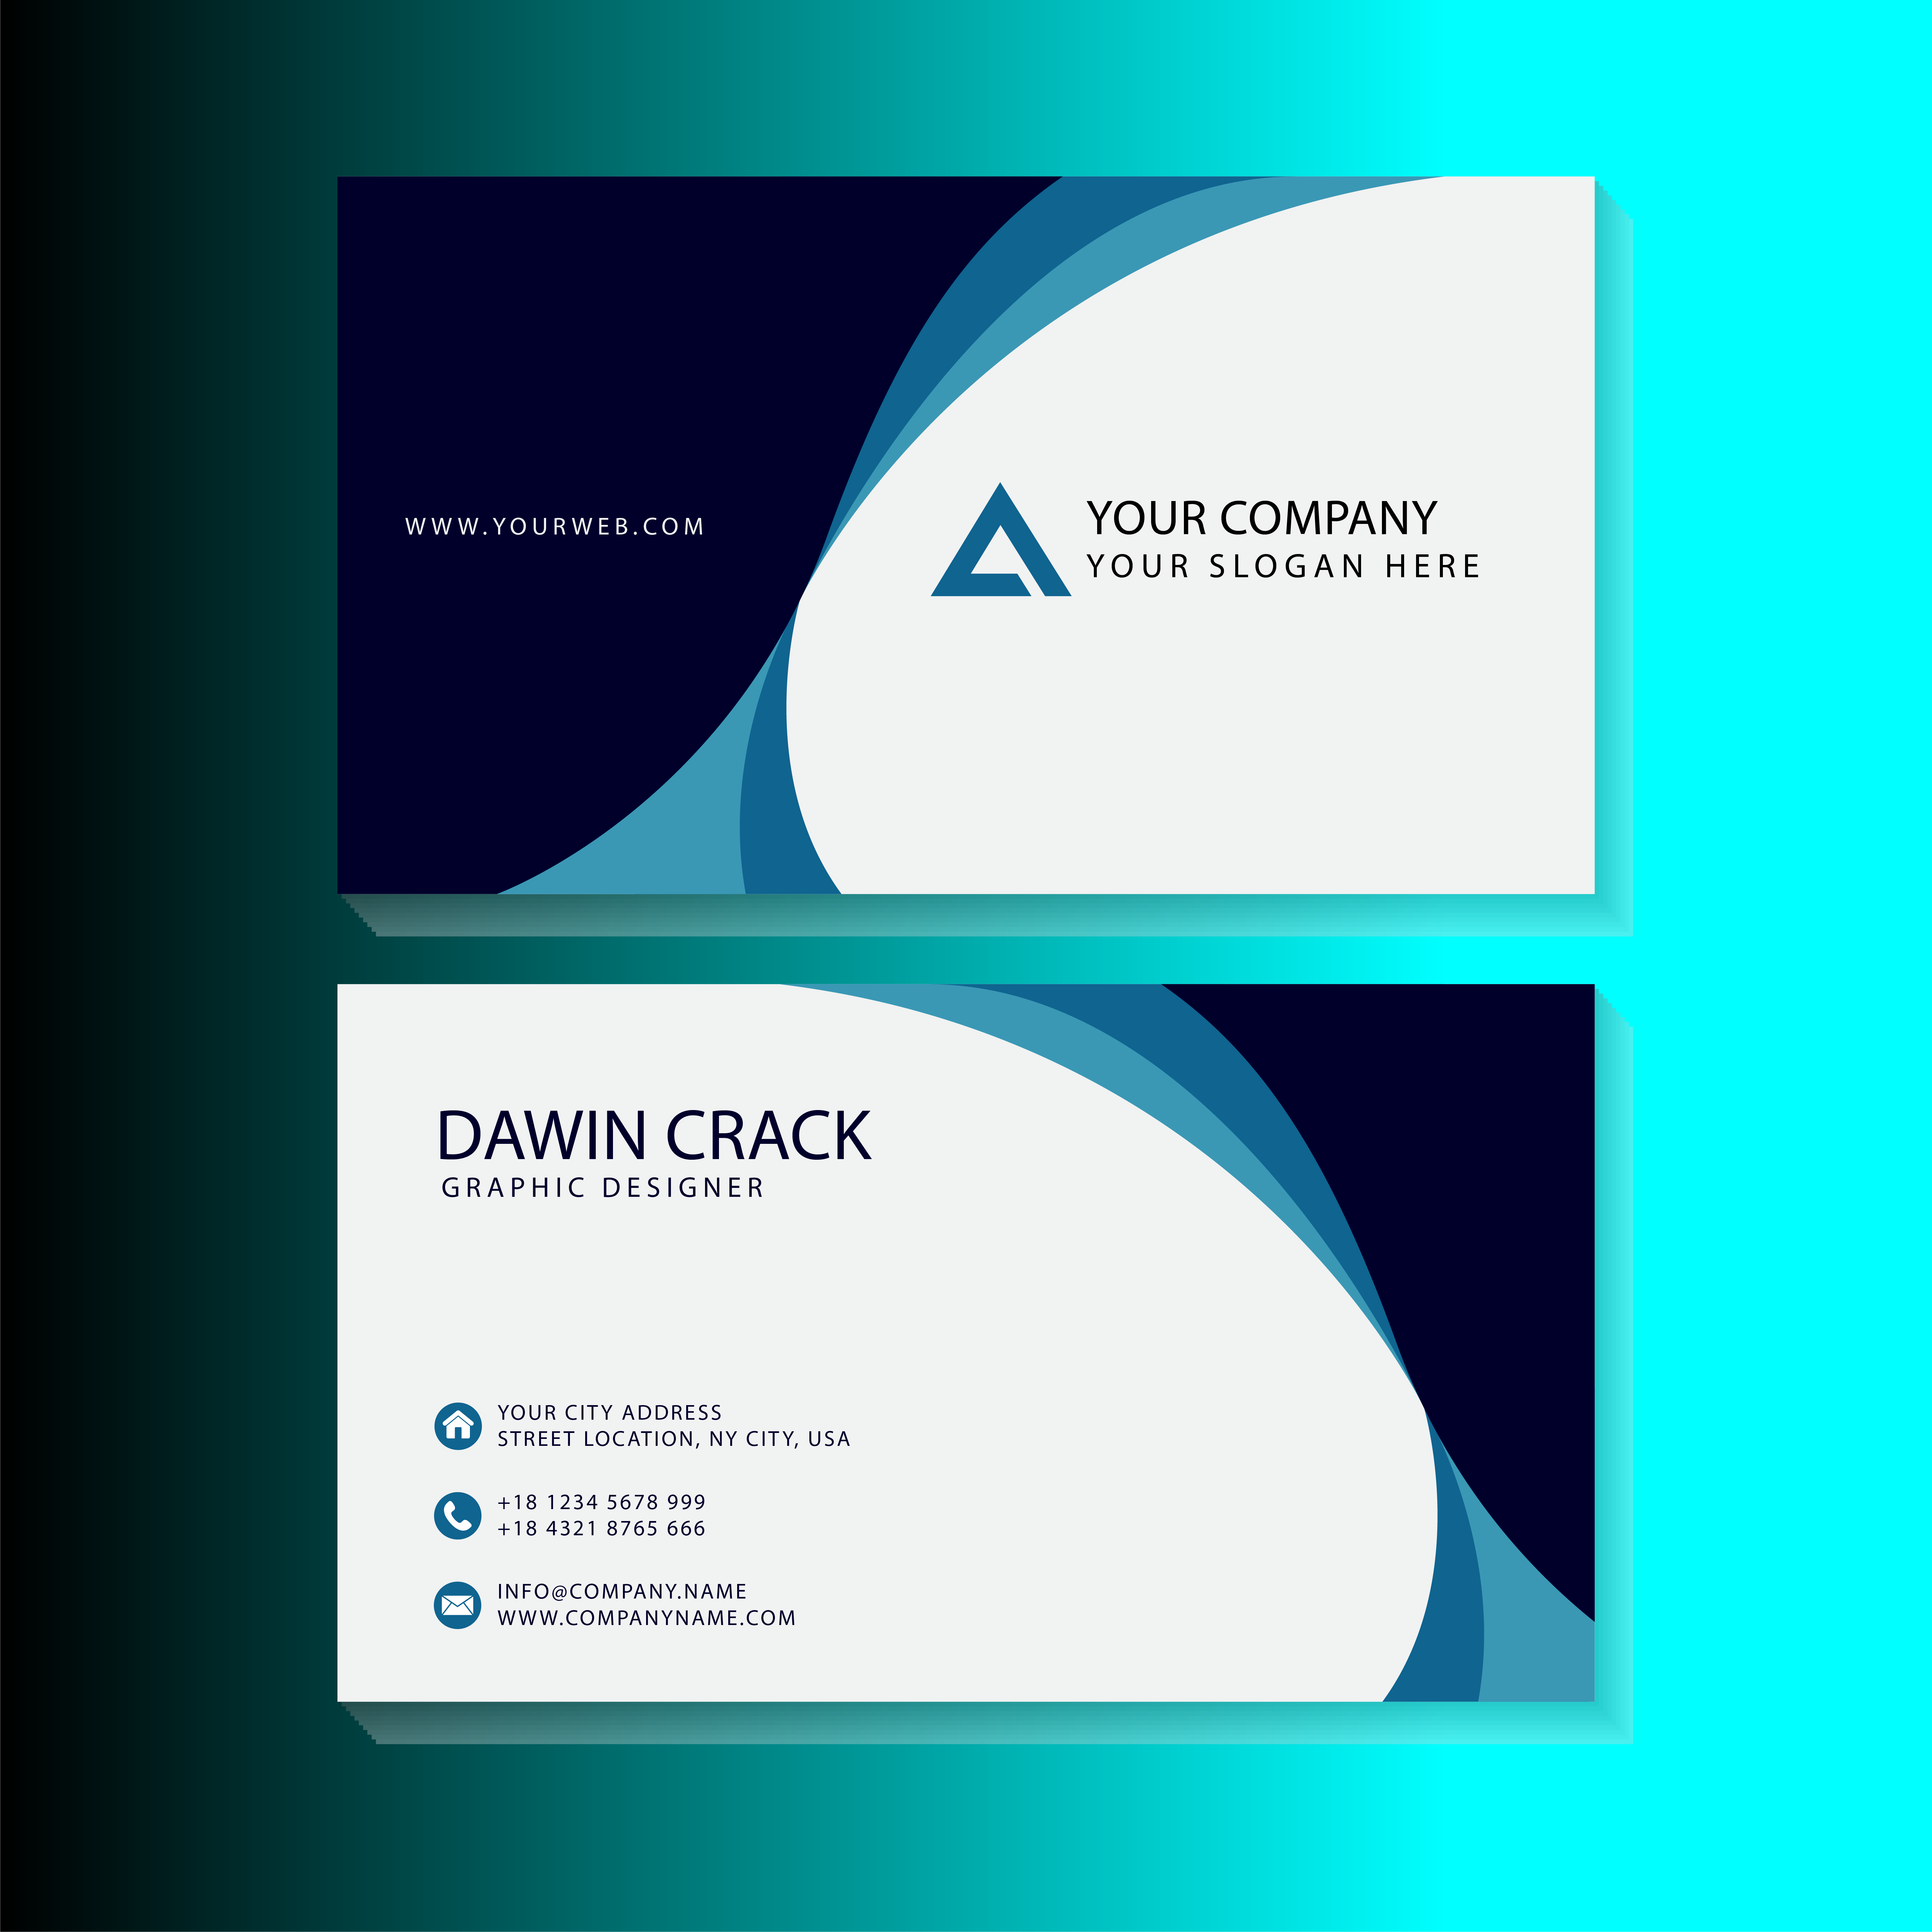 I well do most creative business card for you